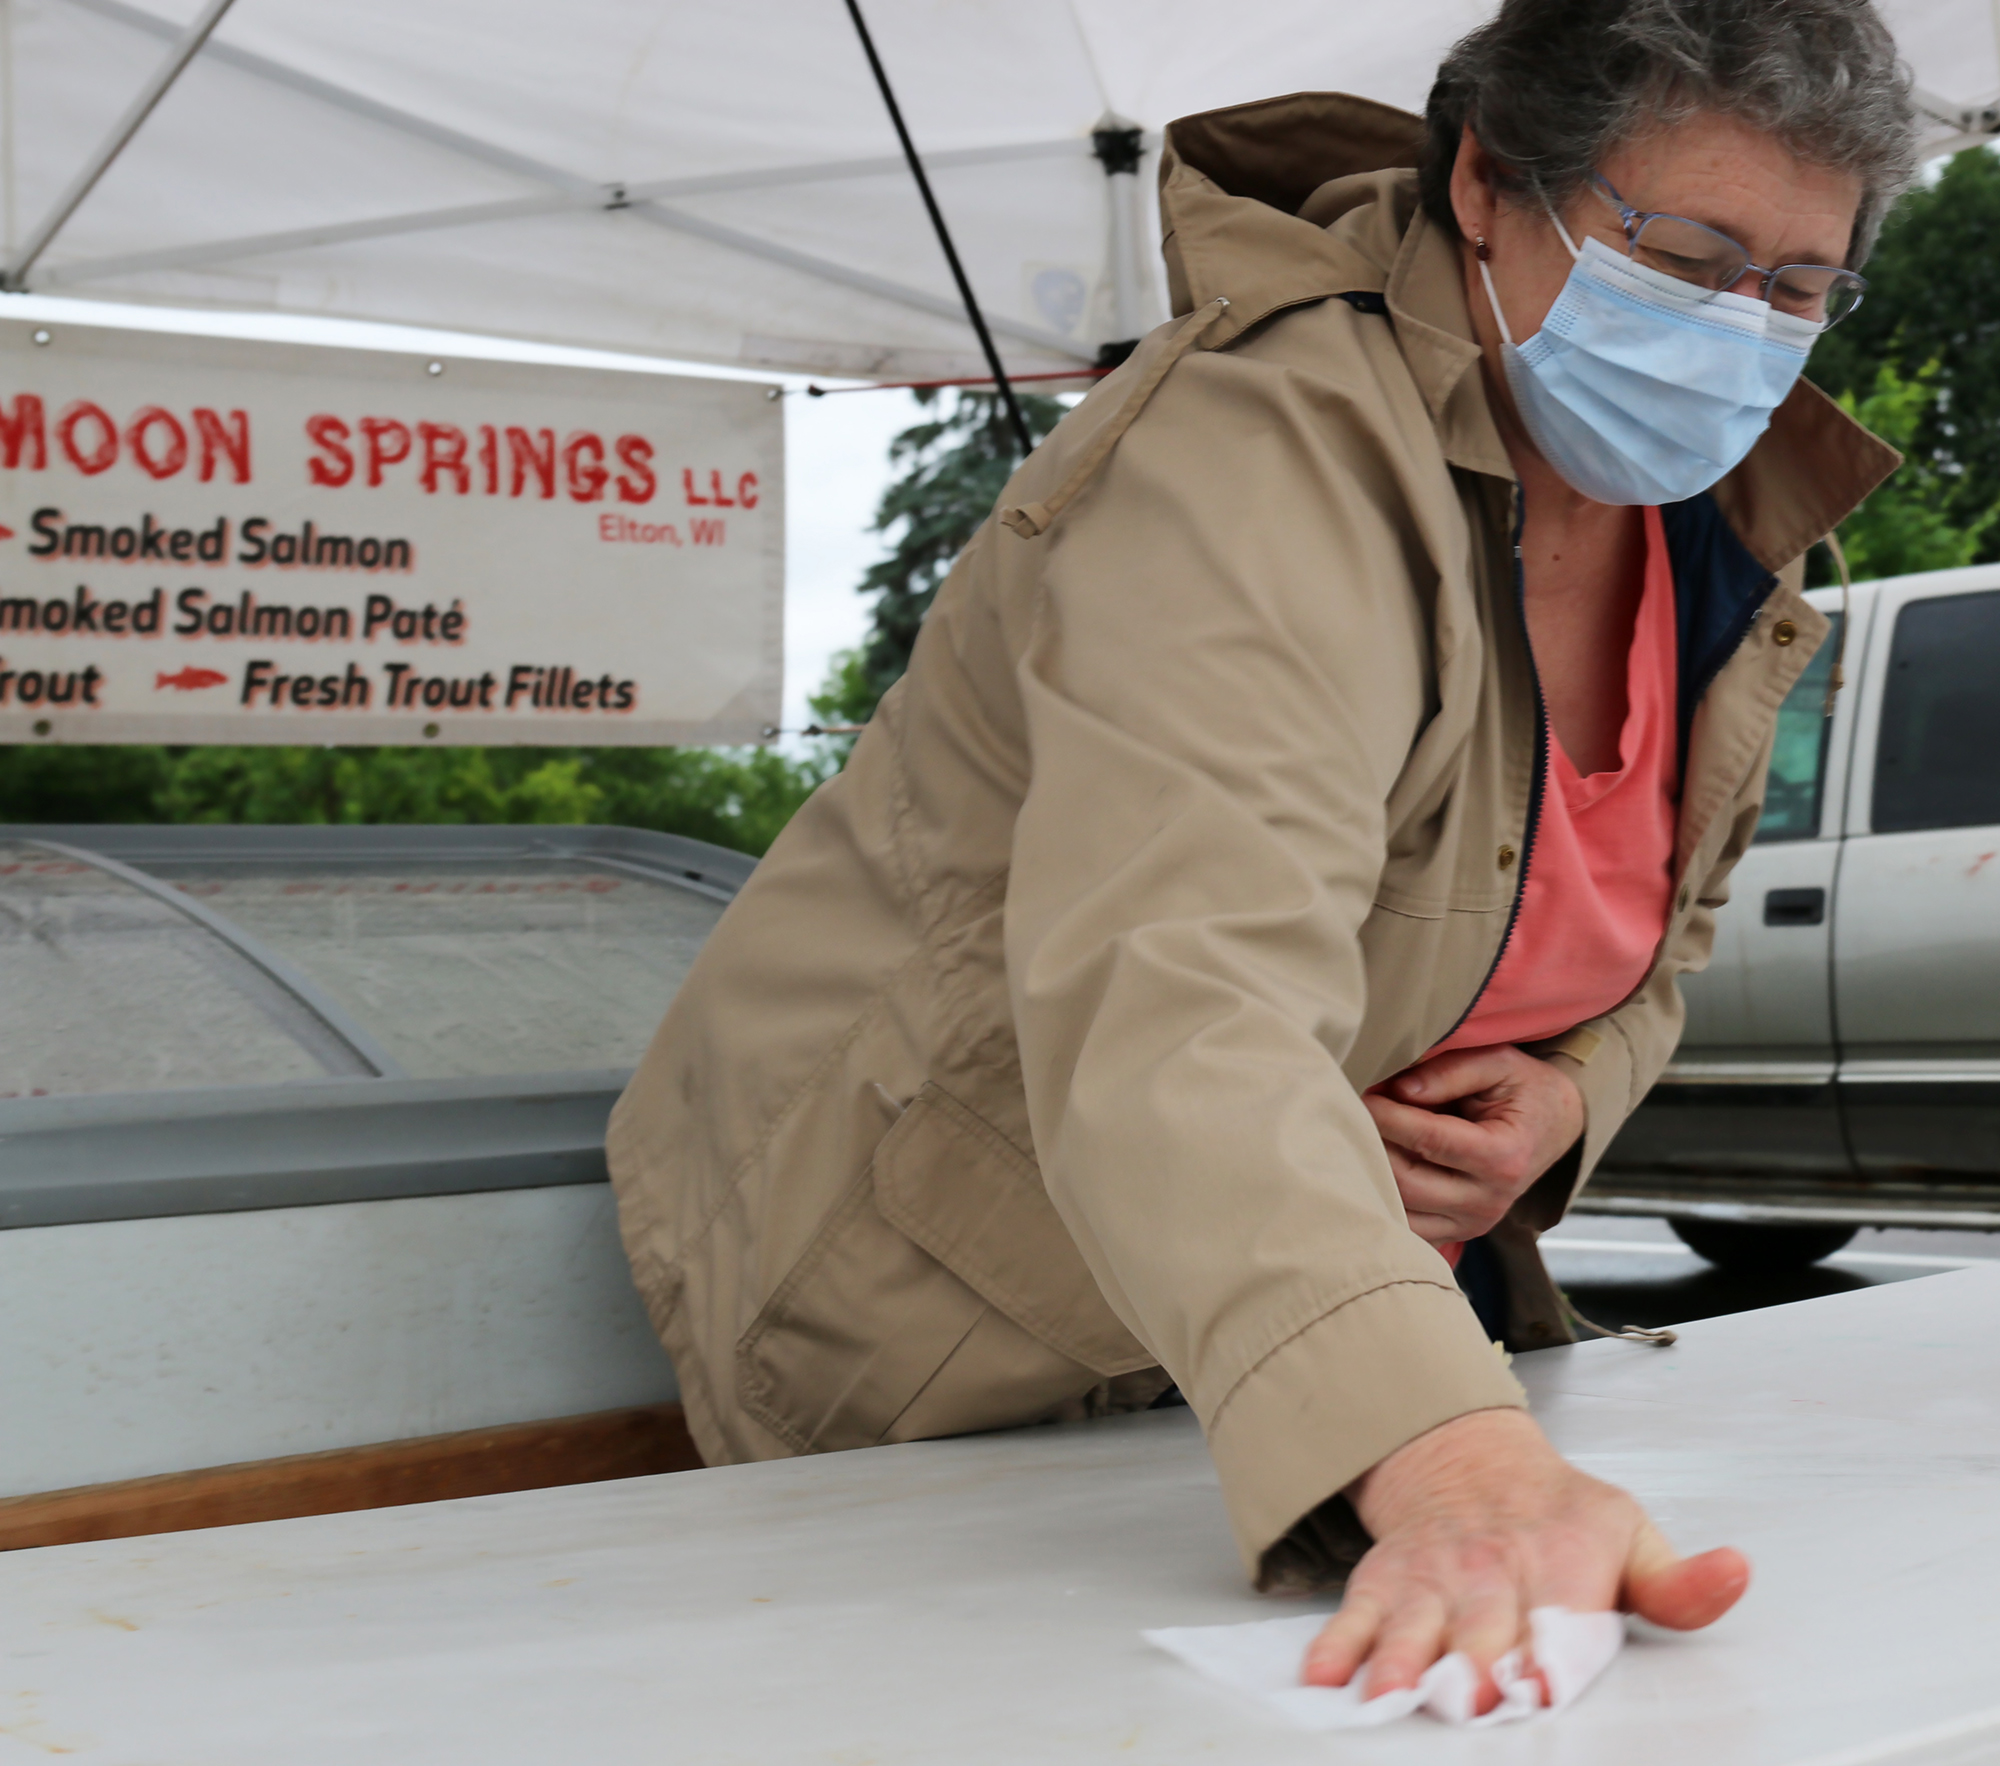 Bobbie Schneider of Silver Moon Springs wipes down her table after each customer at the first FRESH Project Farmers Market on Saturday. Most vendors wore masks and wiped down surfaces. Social distancing was not too much of an issue, given the repeated rain showers that limited the crowds.Carol Ryczek | NEW Media